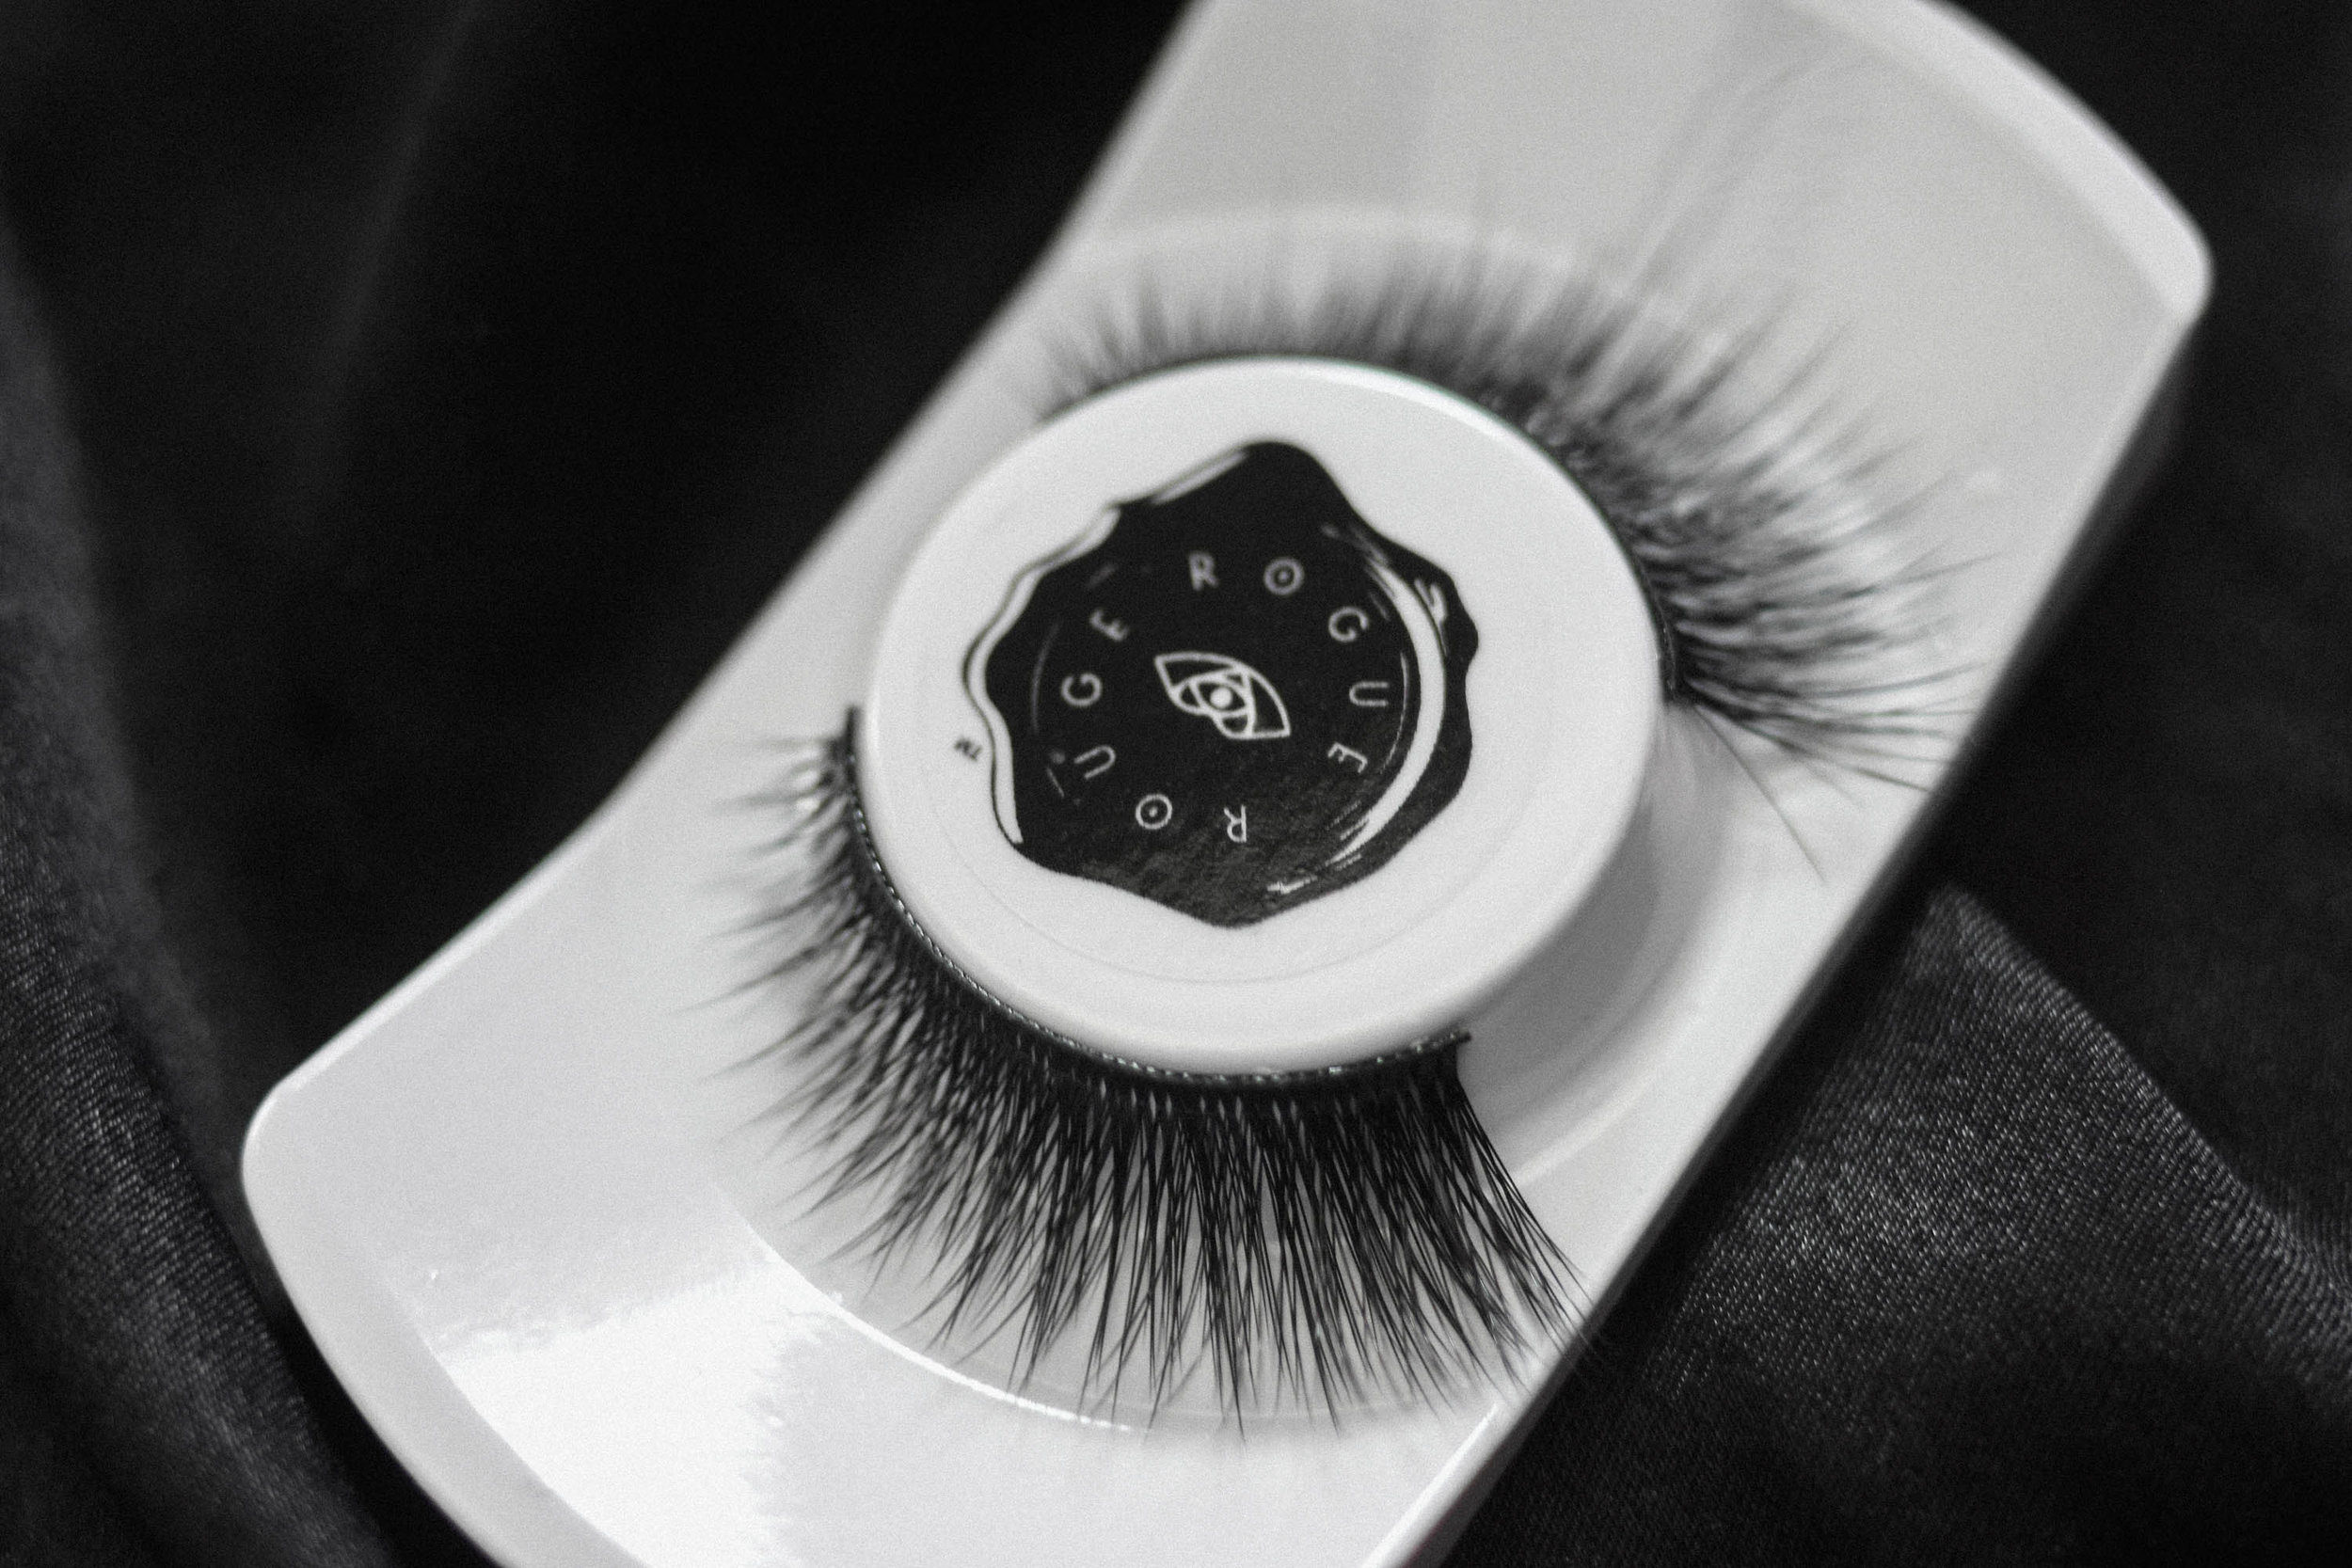 Ballerina Noir   She dances like nobody's watching, every movement beauty in the making. Graceful, yet her spirit is unbreakable – this tapered style is full of feminine glamour. With wispy length and evenly distributed volume, this style gives the illusion of a naturally fuller lash that will captivate.